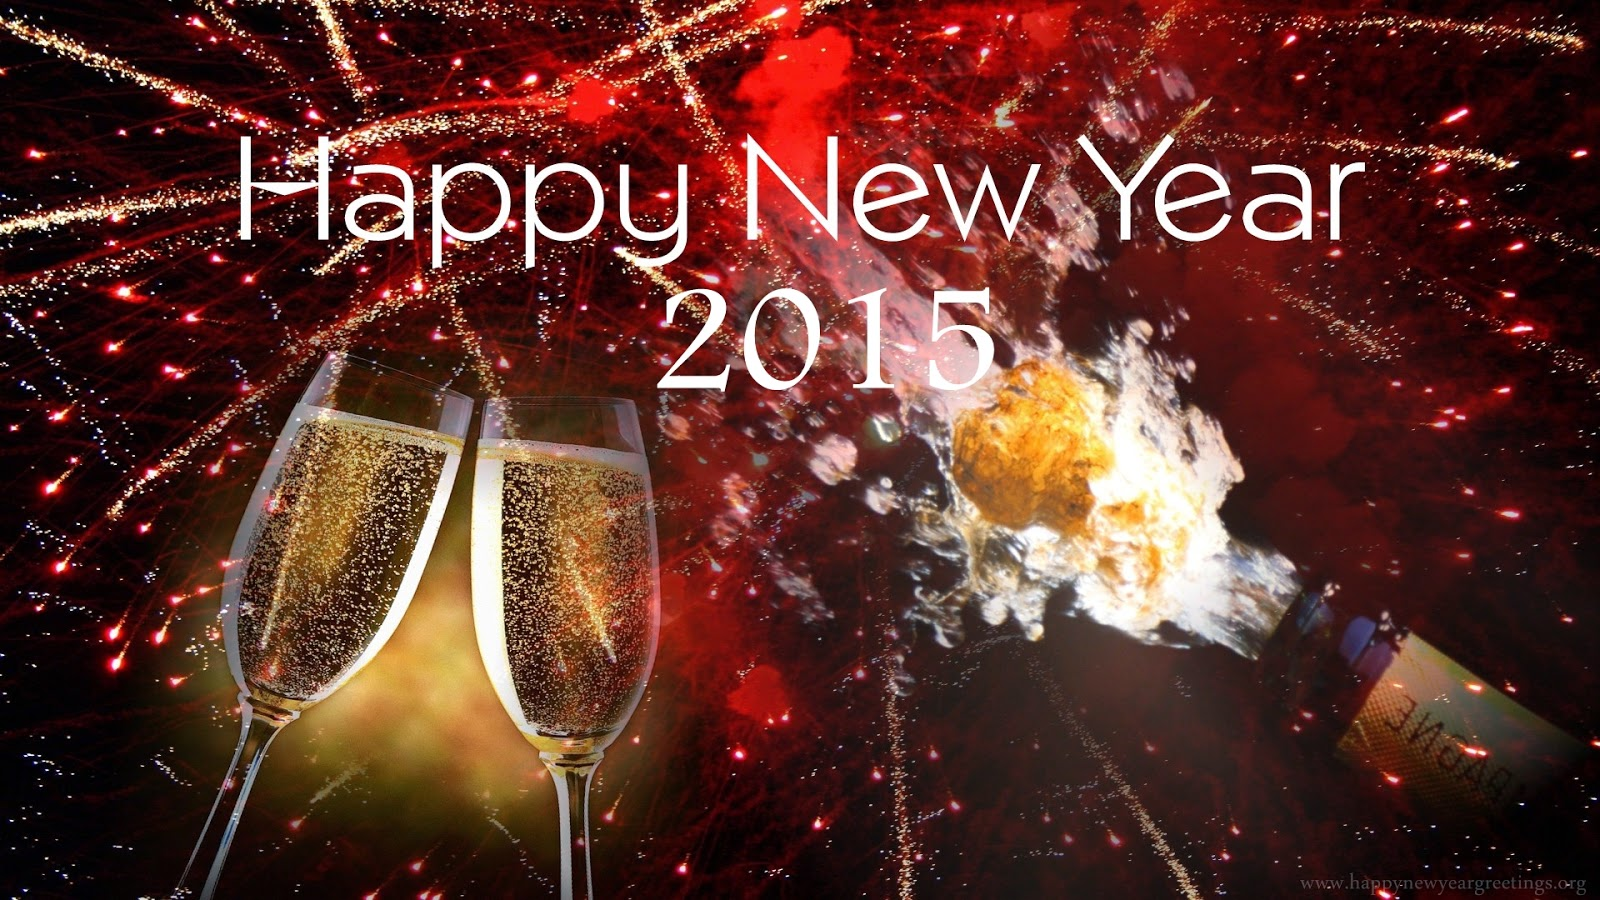 Wallpaper download new year 2015 - Happy New Year 2015 Hd Wallpaper 24